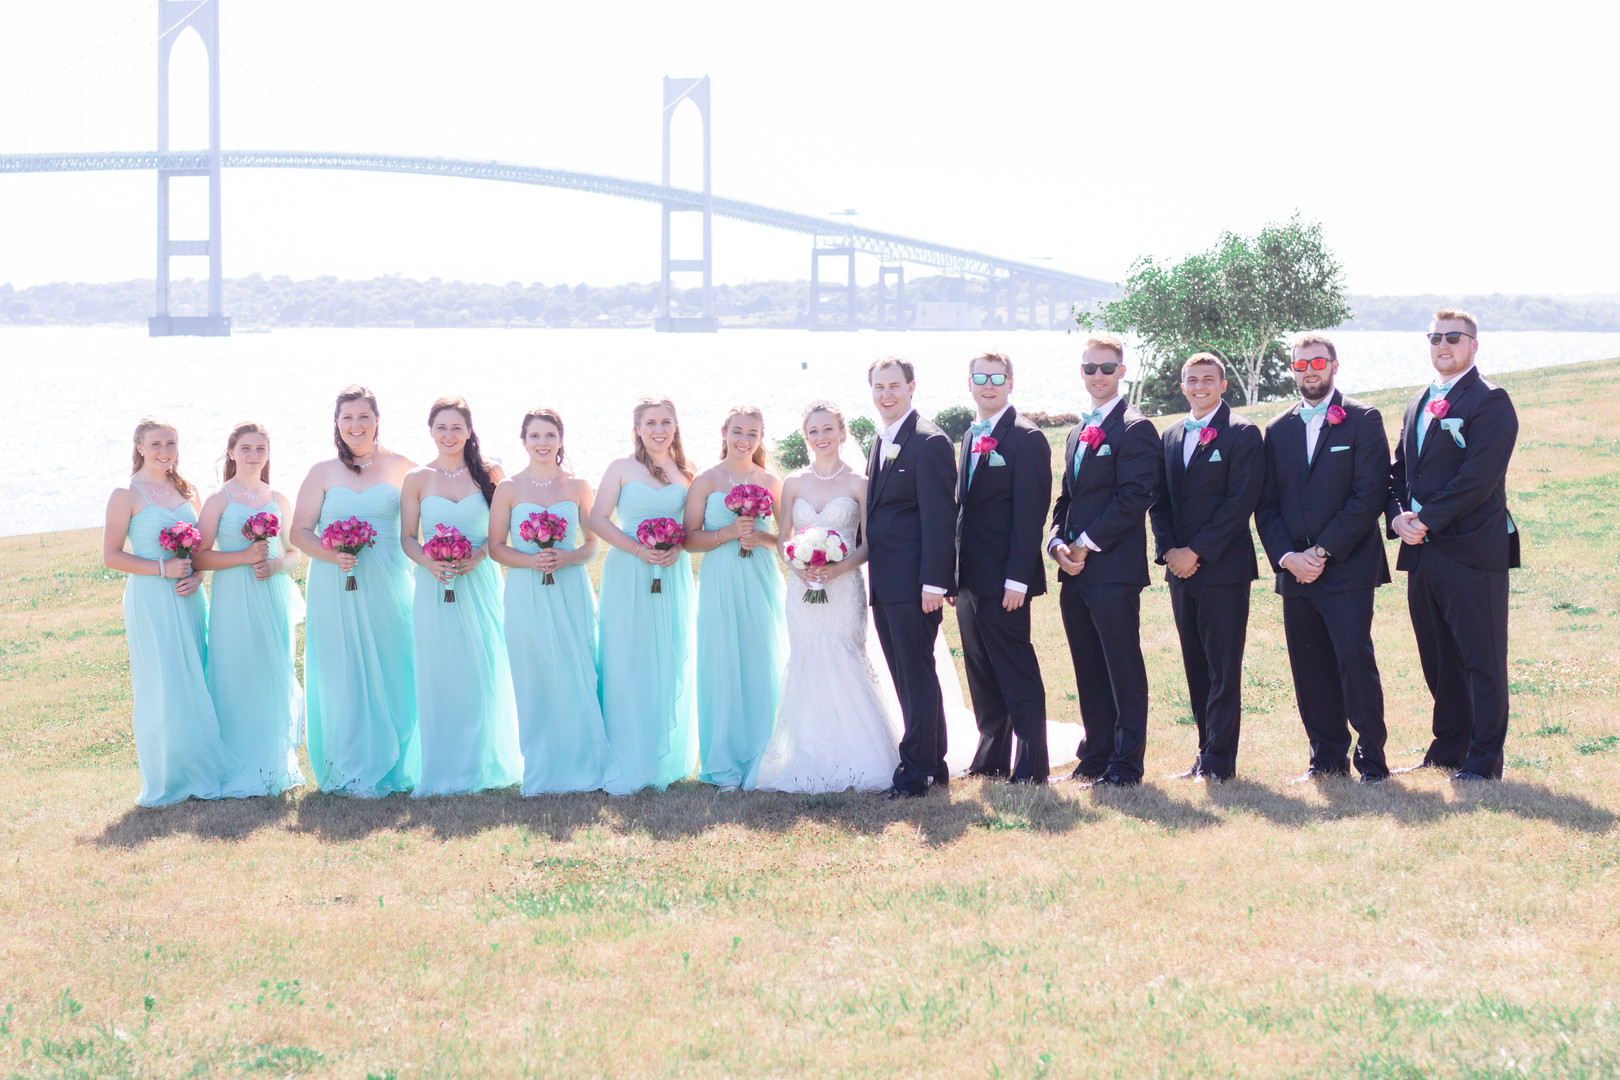 bridal-party-newport-bridge-wedding.jpg